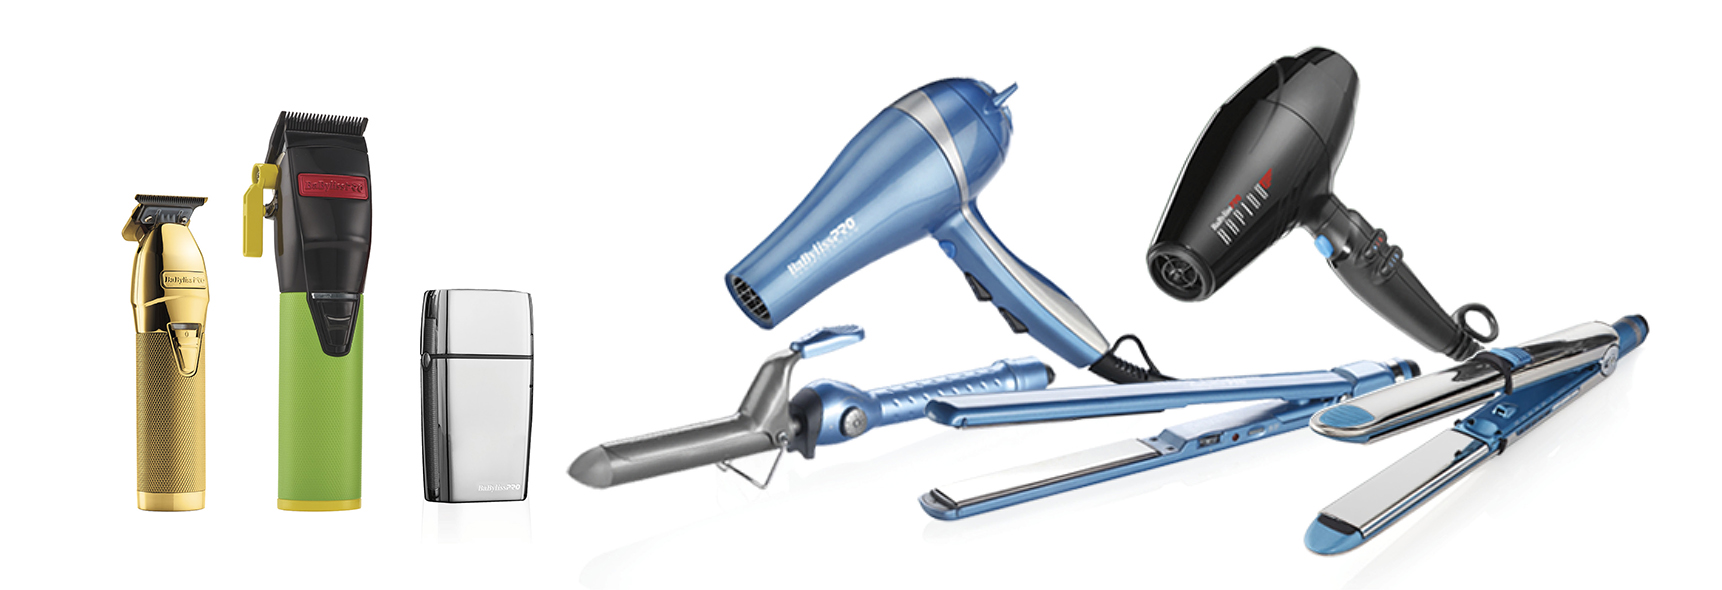 Hair dryers offer